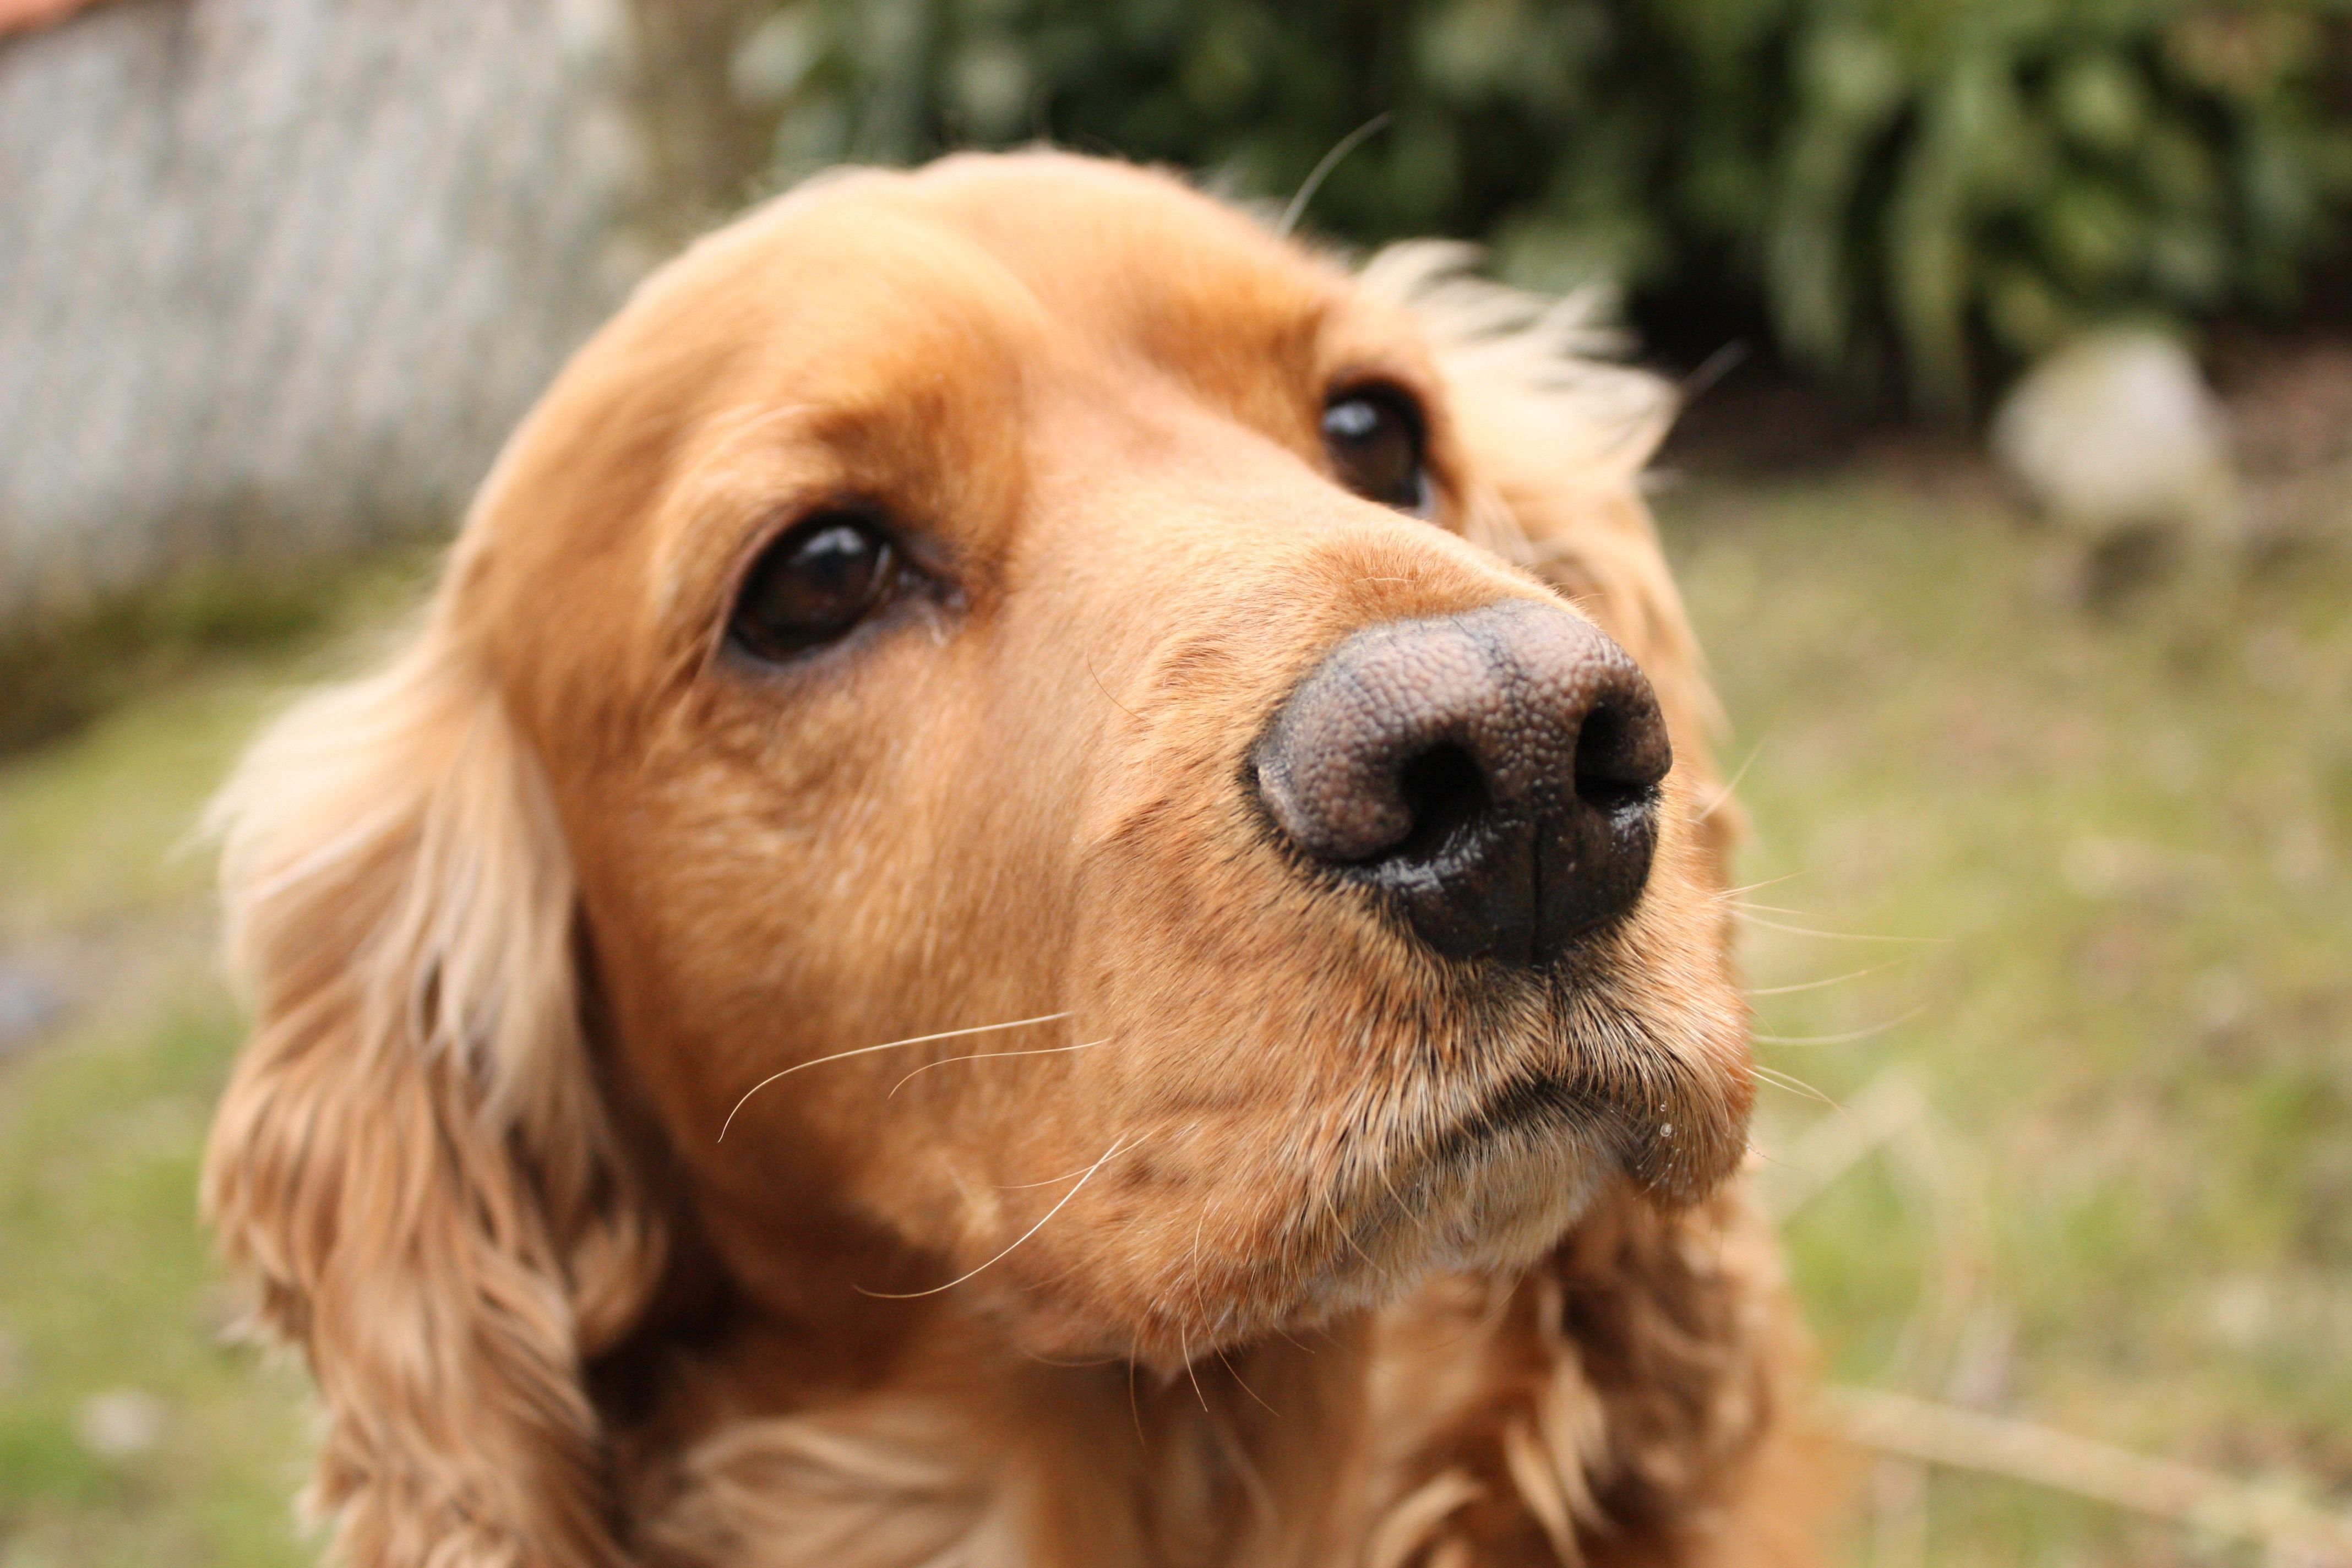 English Cocker Spaniels in UK and USA/Canada have an